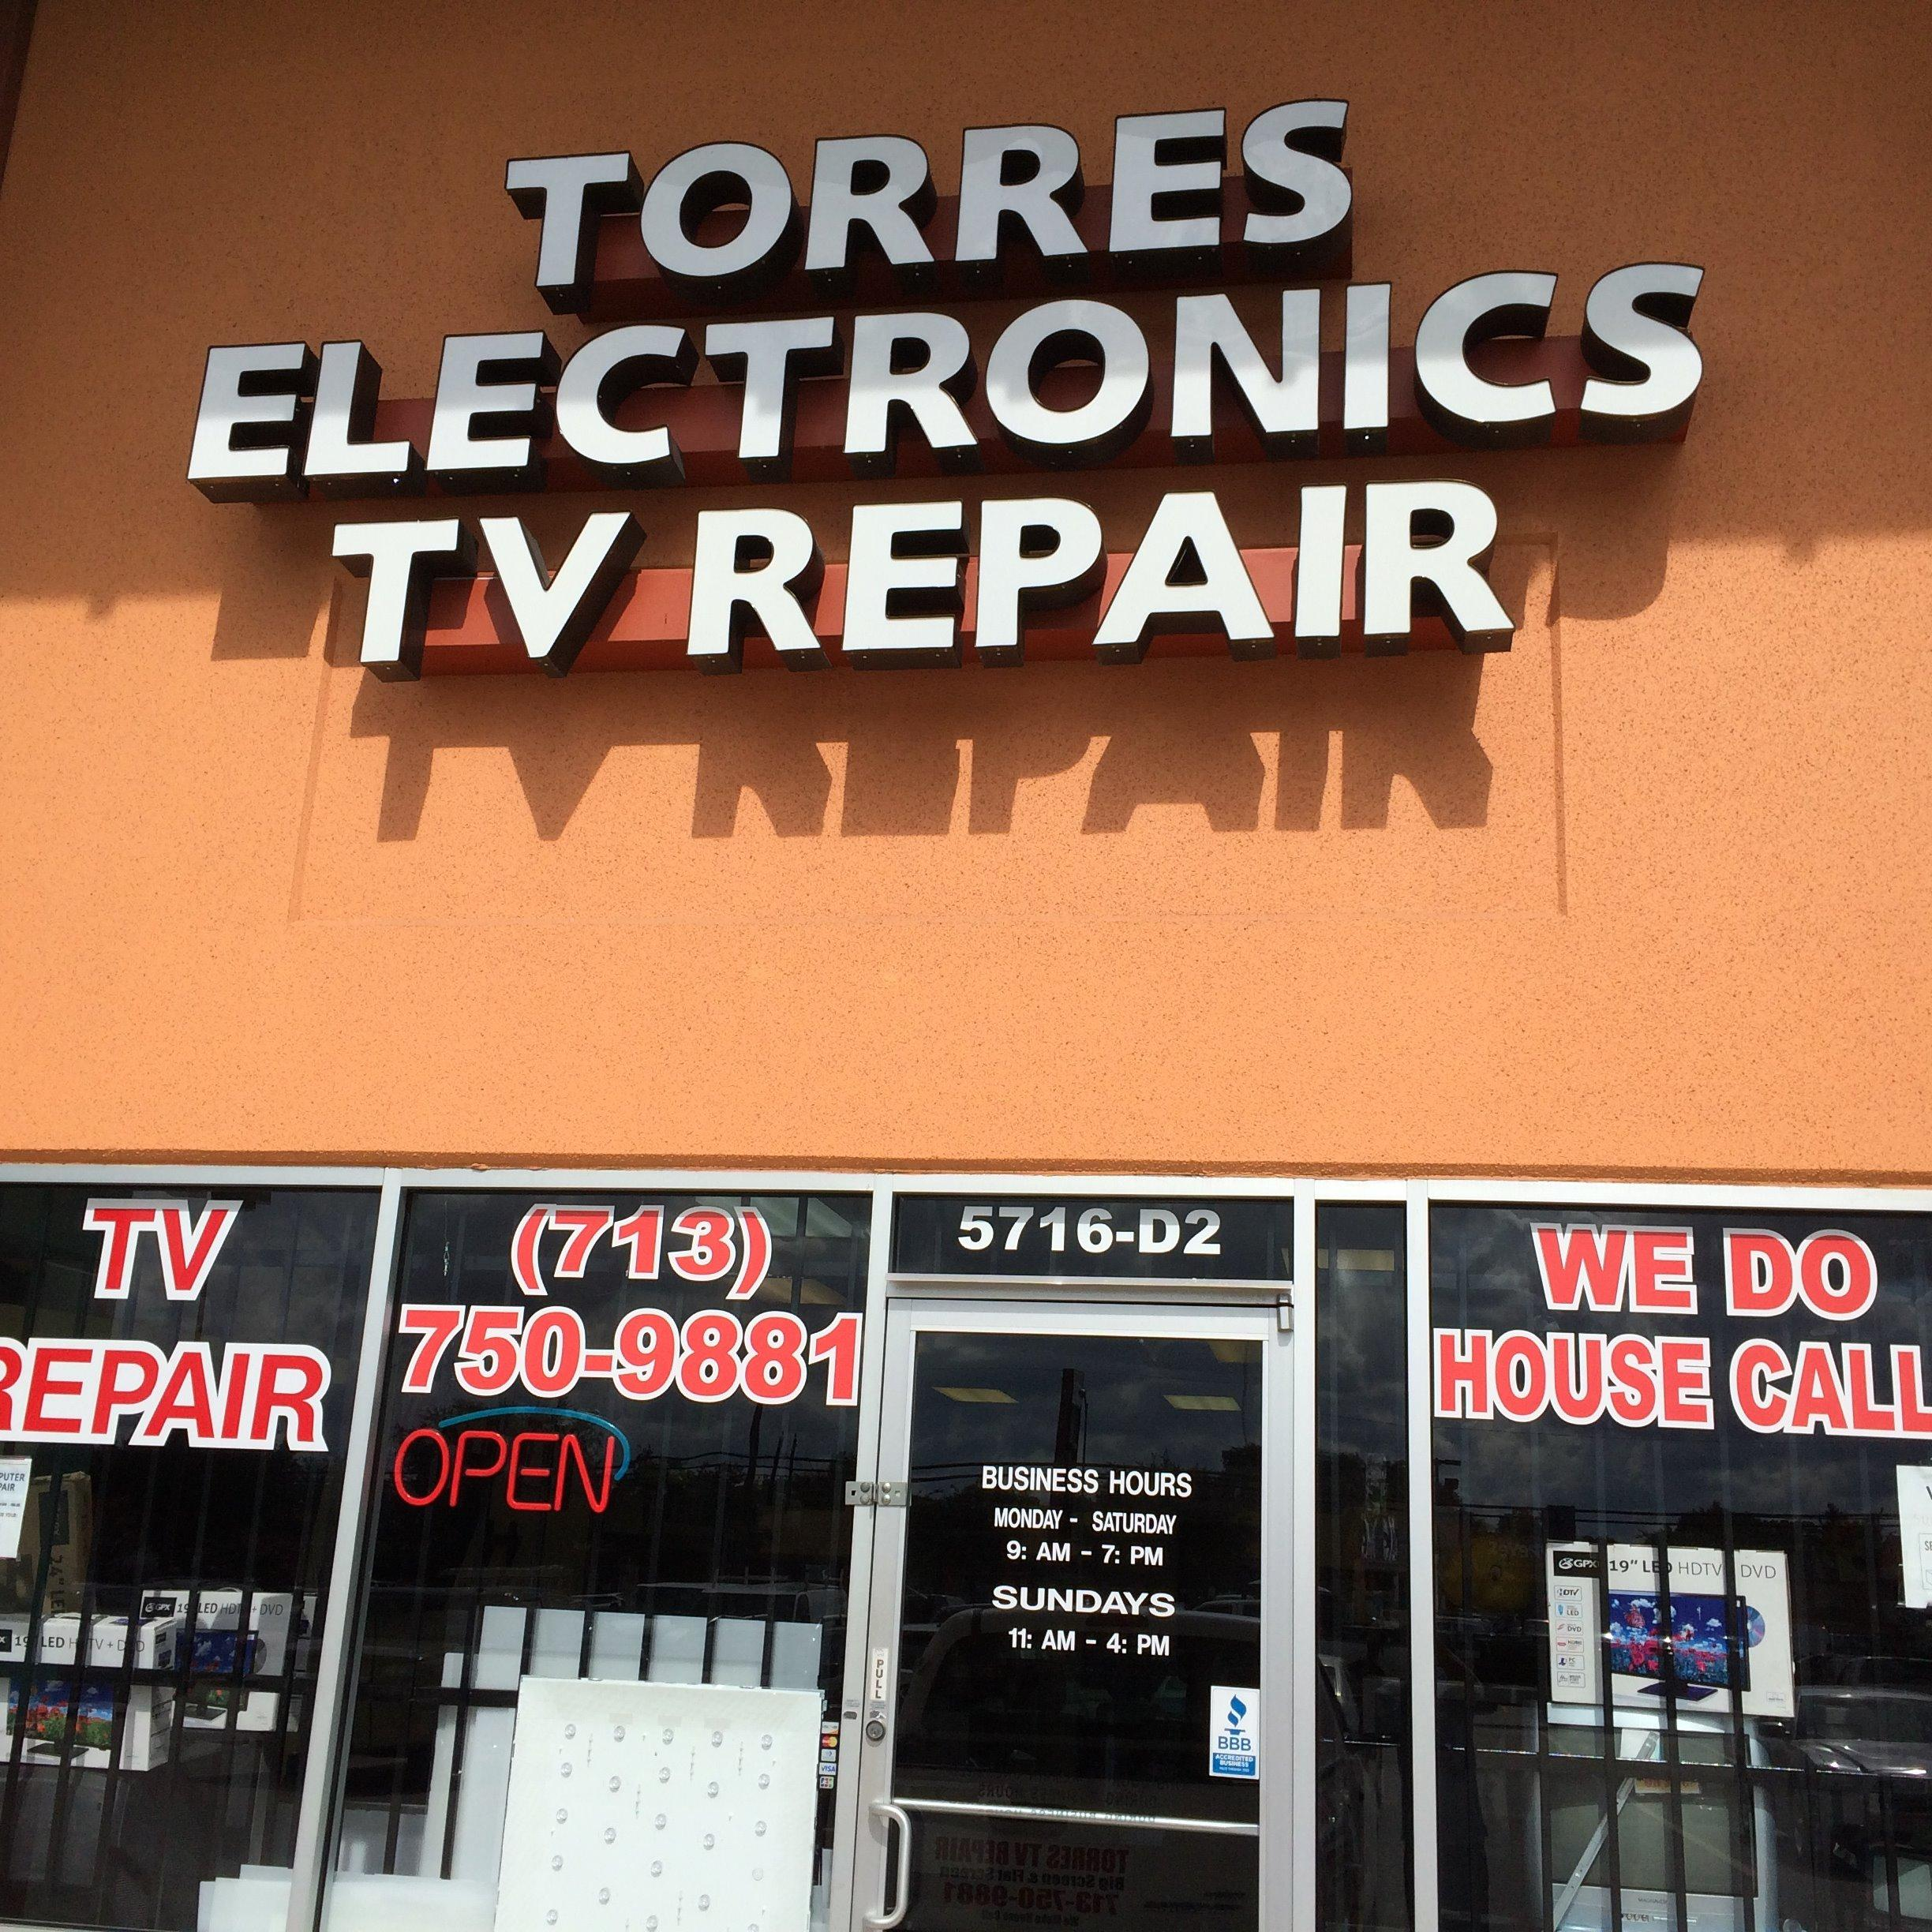 TORRES ELECTRONICS TV REPAIR AND PARTS